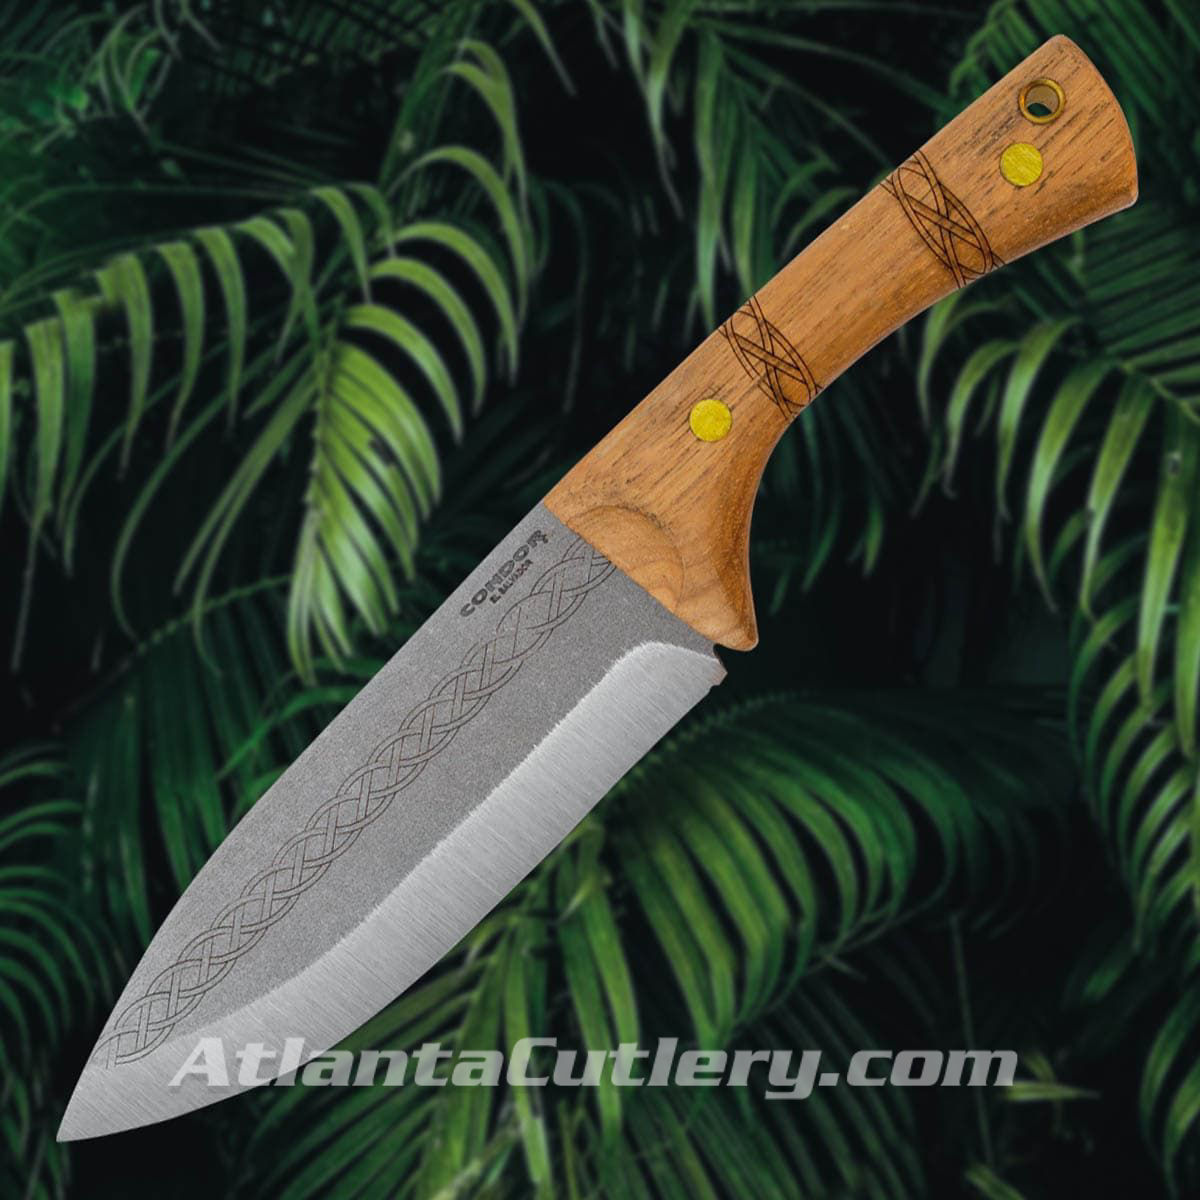 Condor Pictus Knife with Hickory Scales